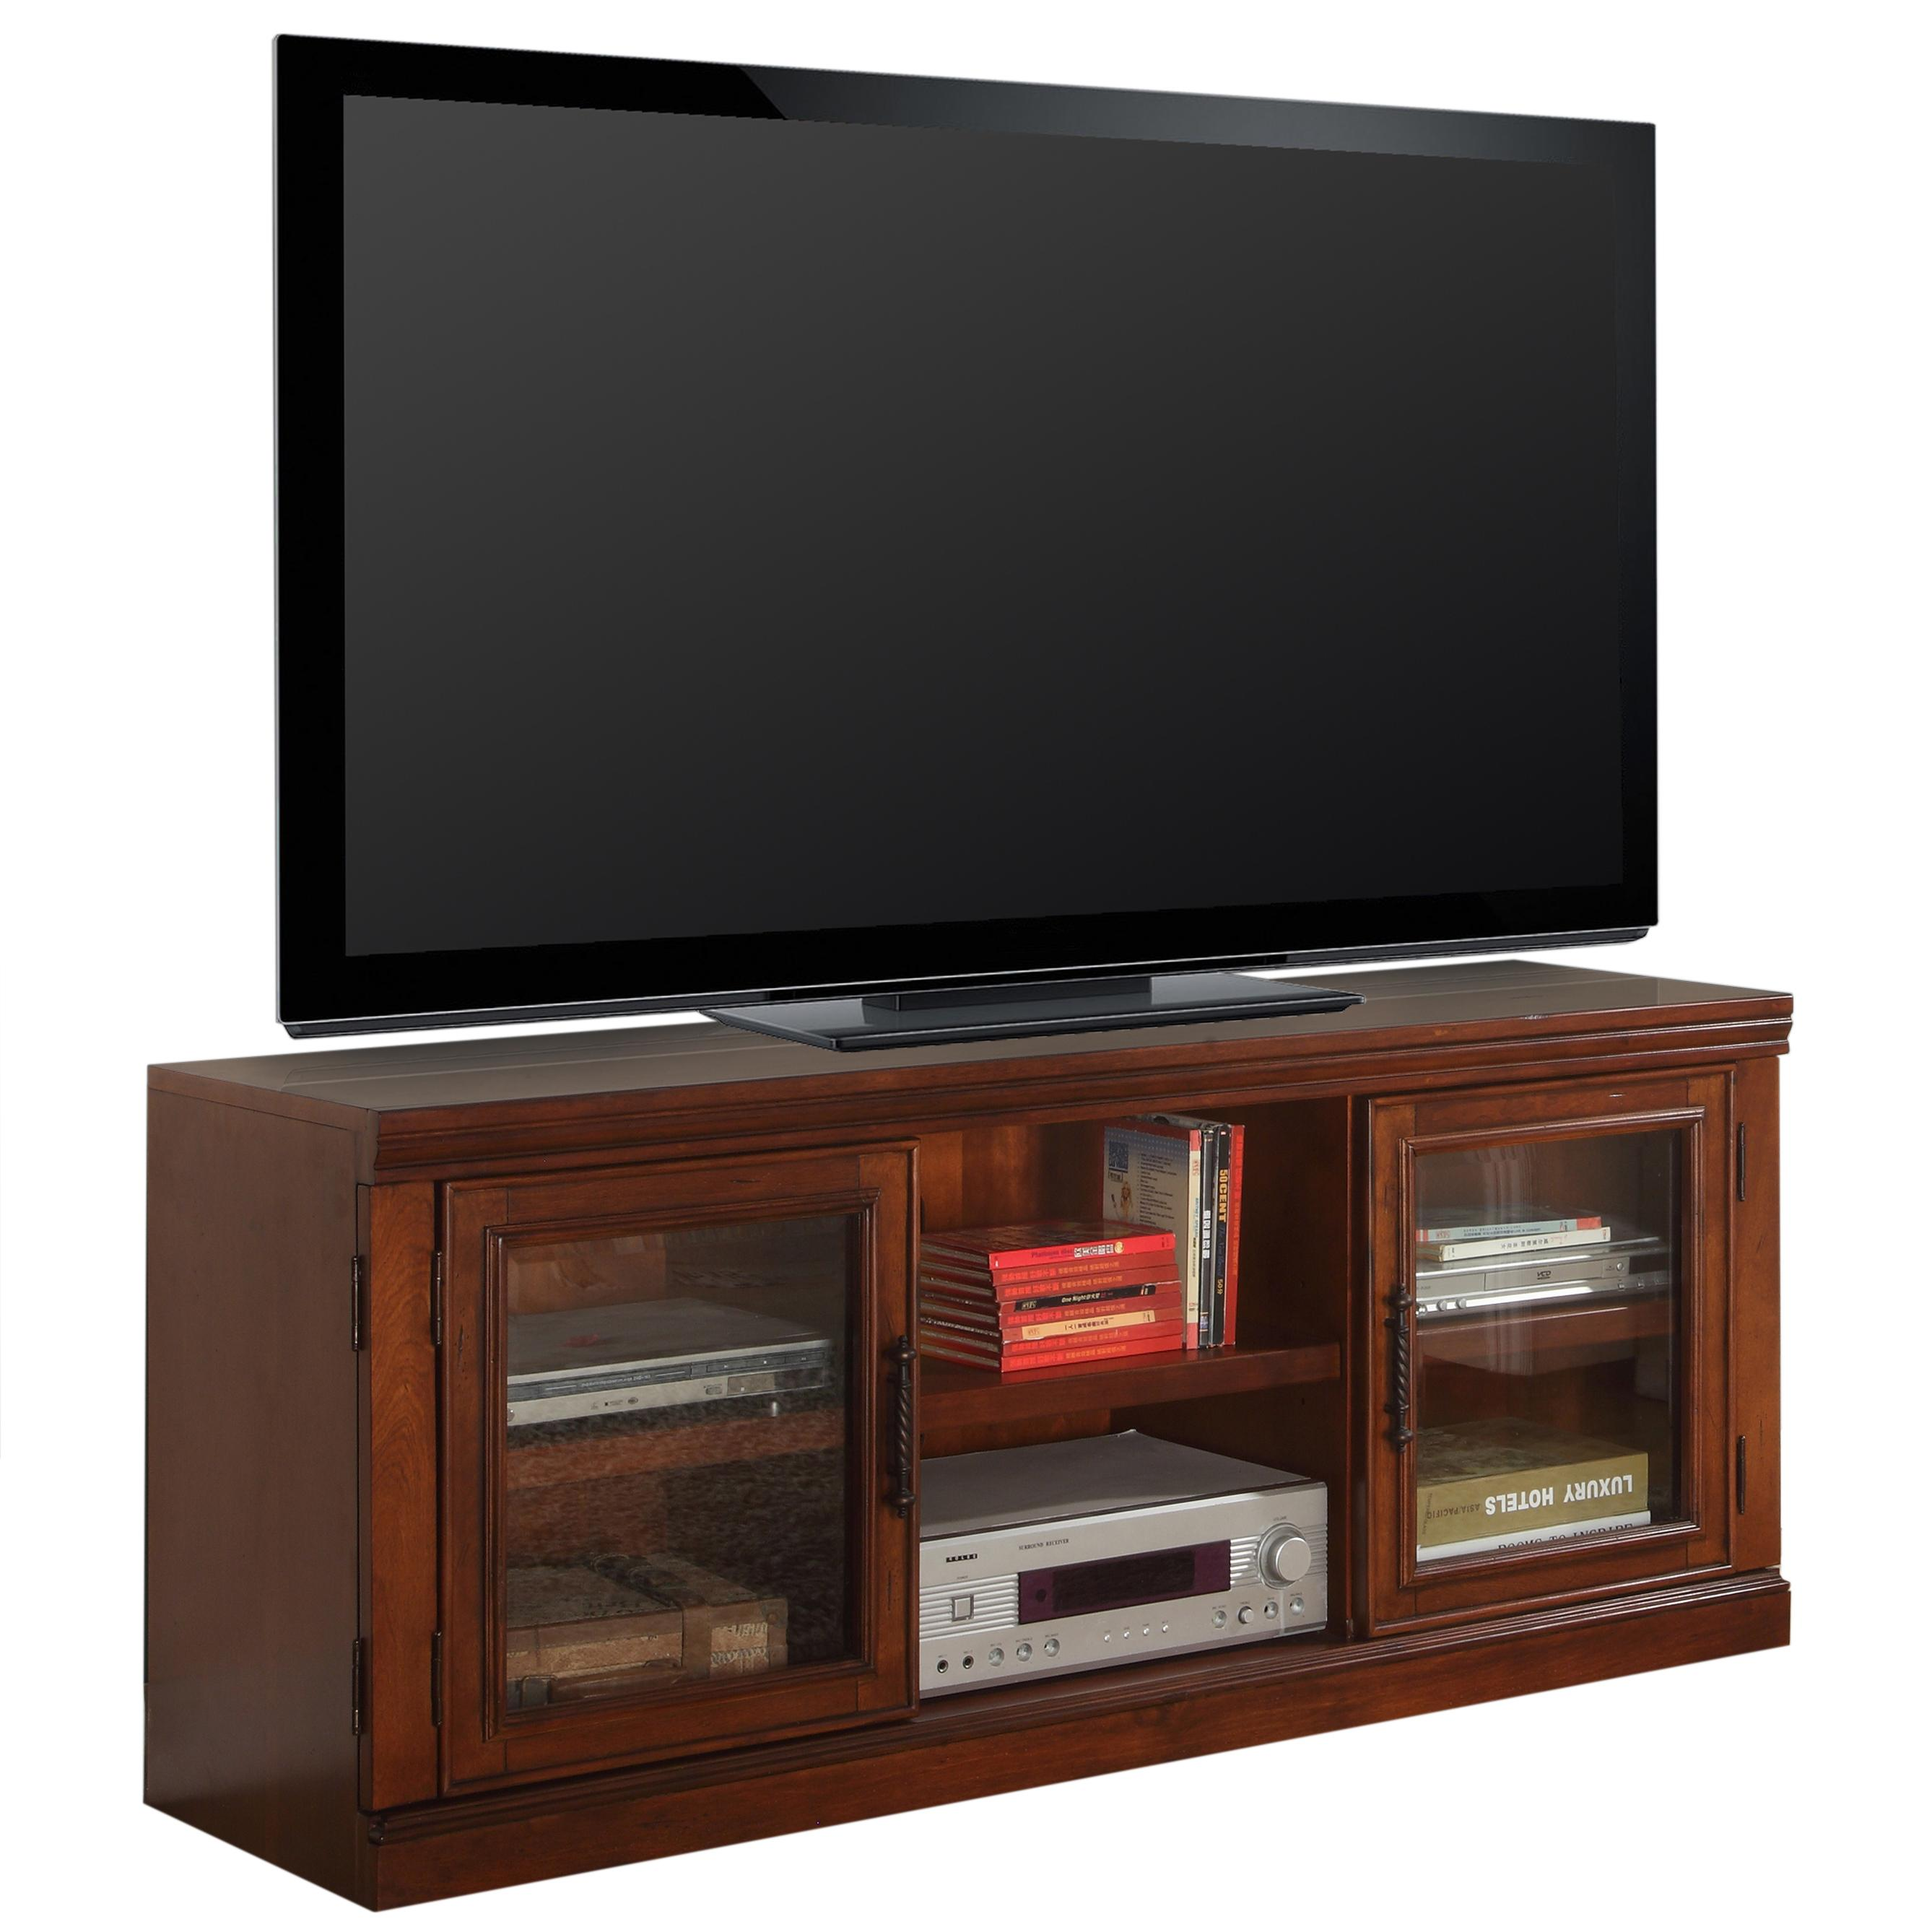 Parker House Premier Athens 57-Inch Stationary Console - Item Number: PAT 150